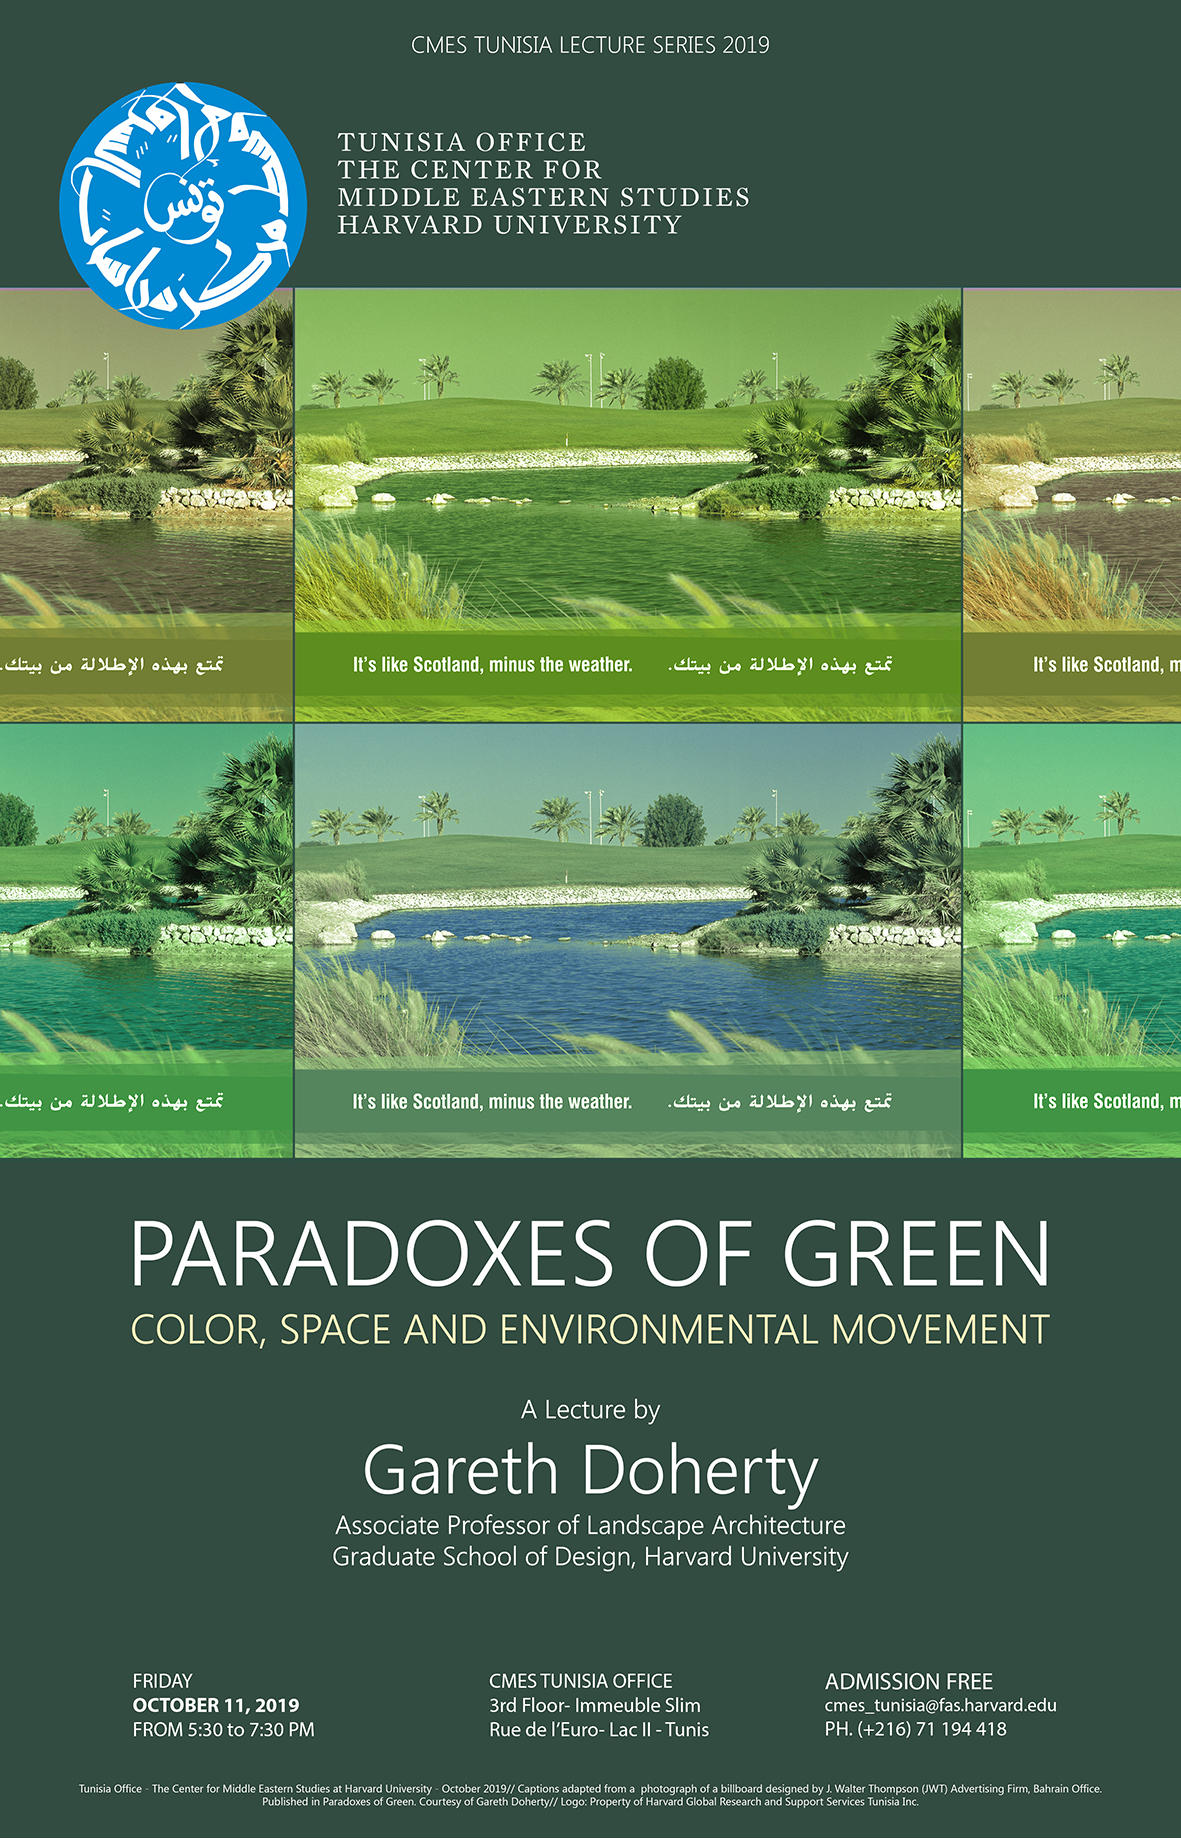 Paradoxes of Green